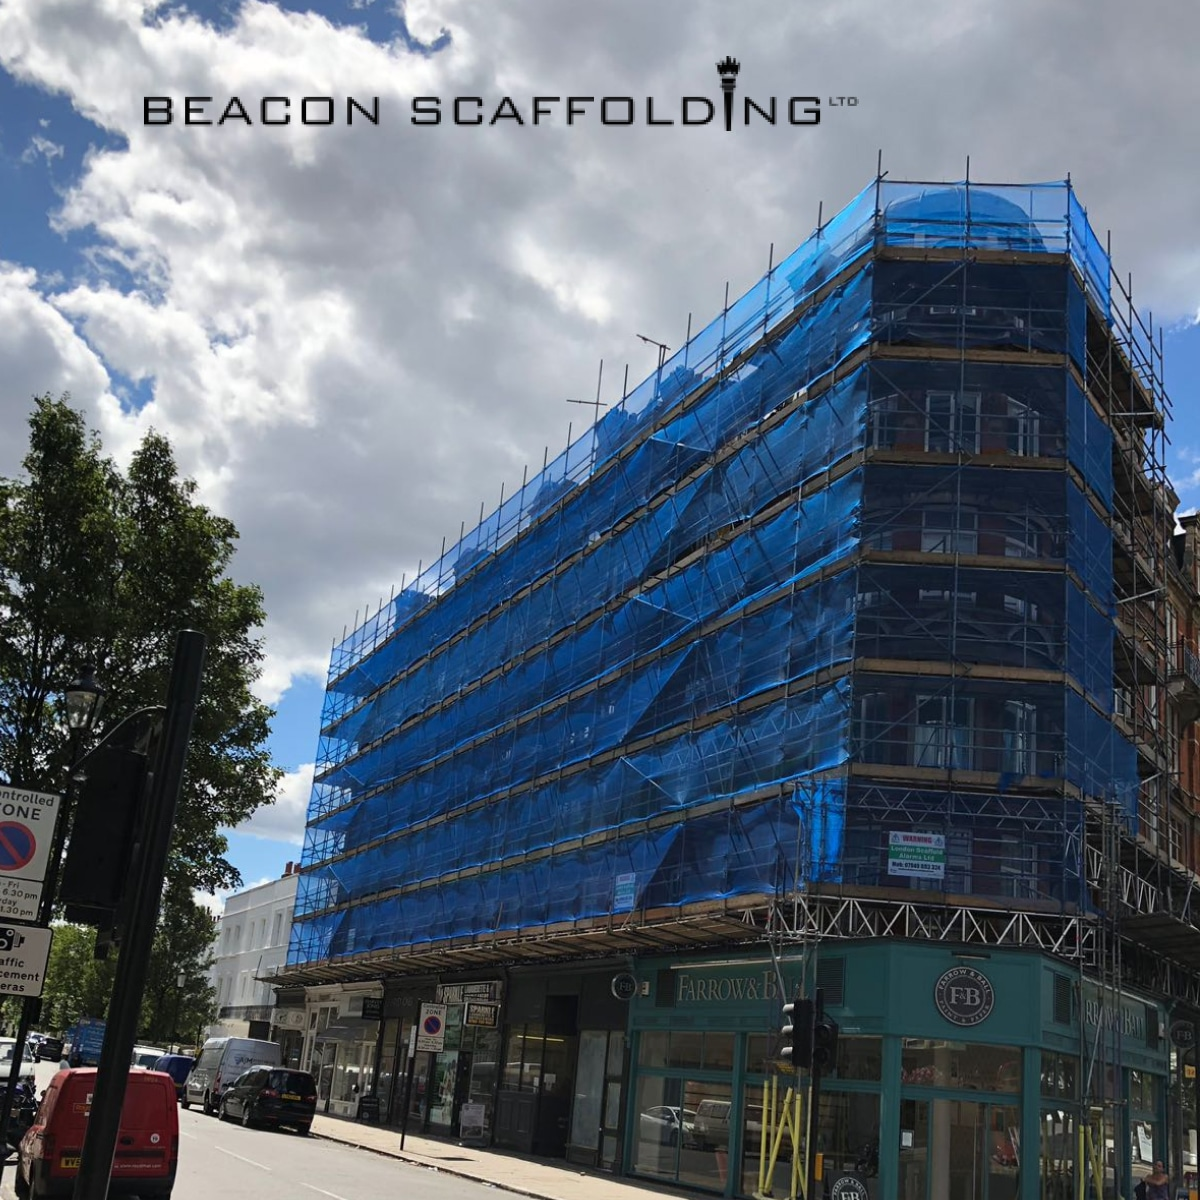 Beacon Scaffolding